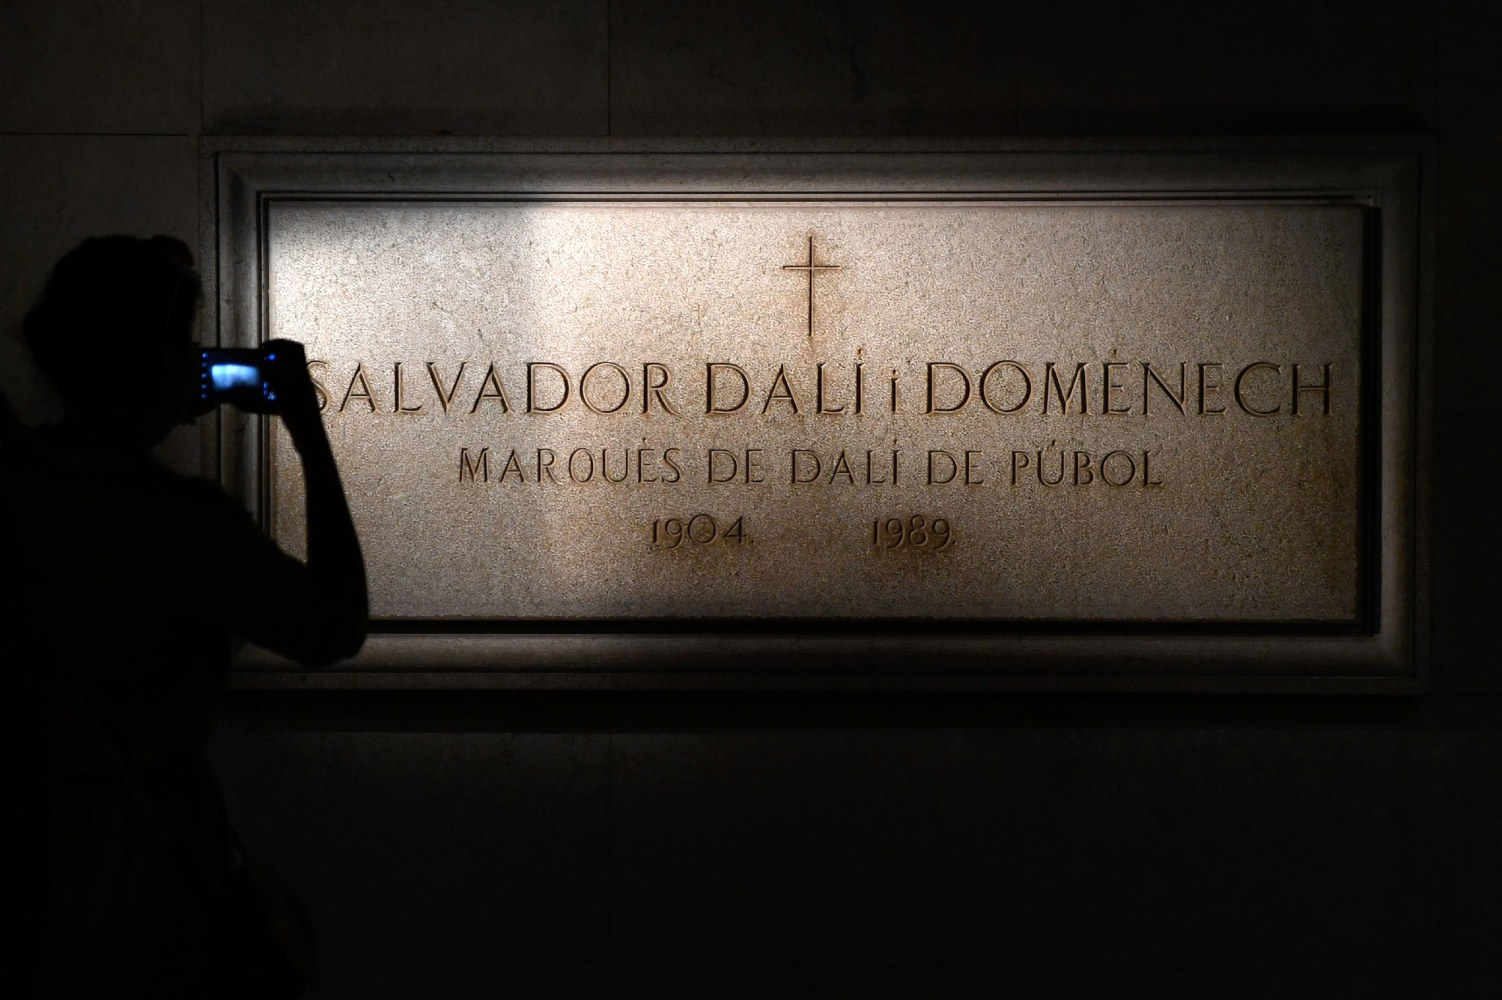 In surrealist twist, Spanish artist Dali's body is exhumed in paternity lawsuit